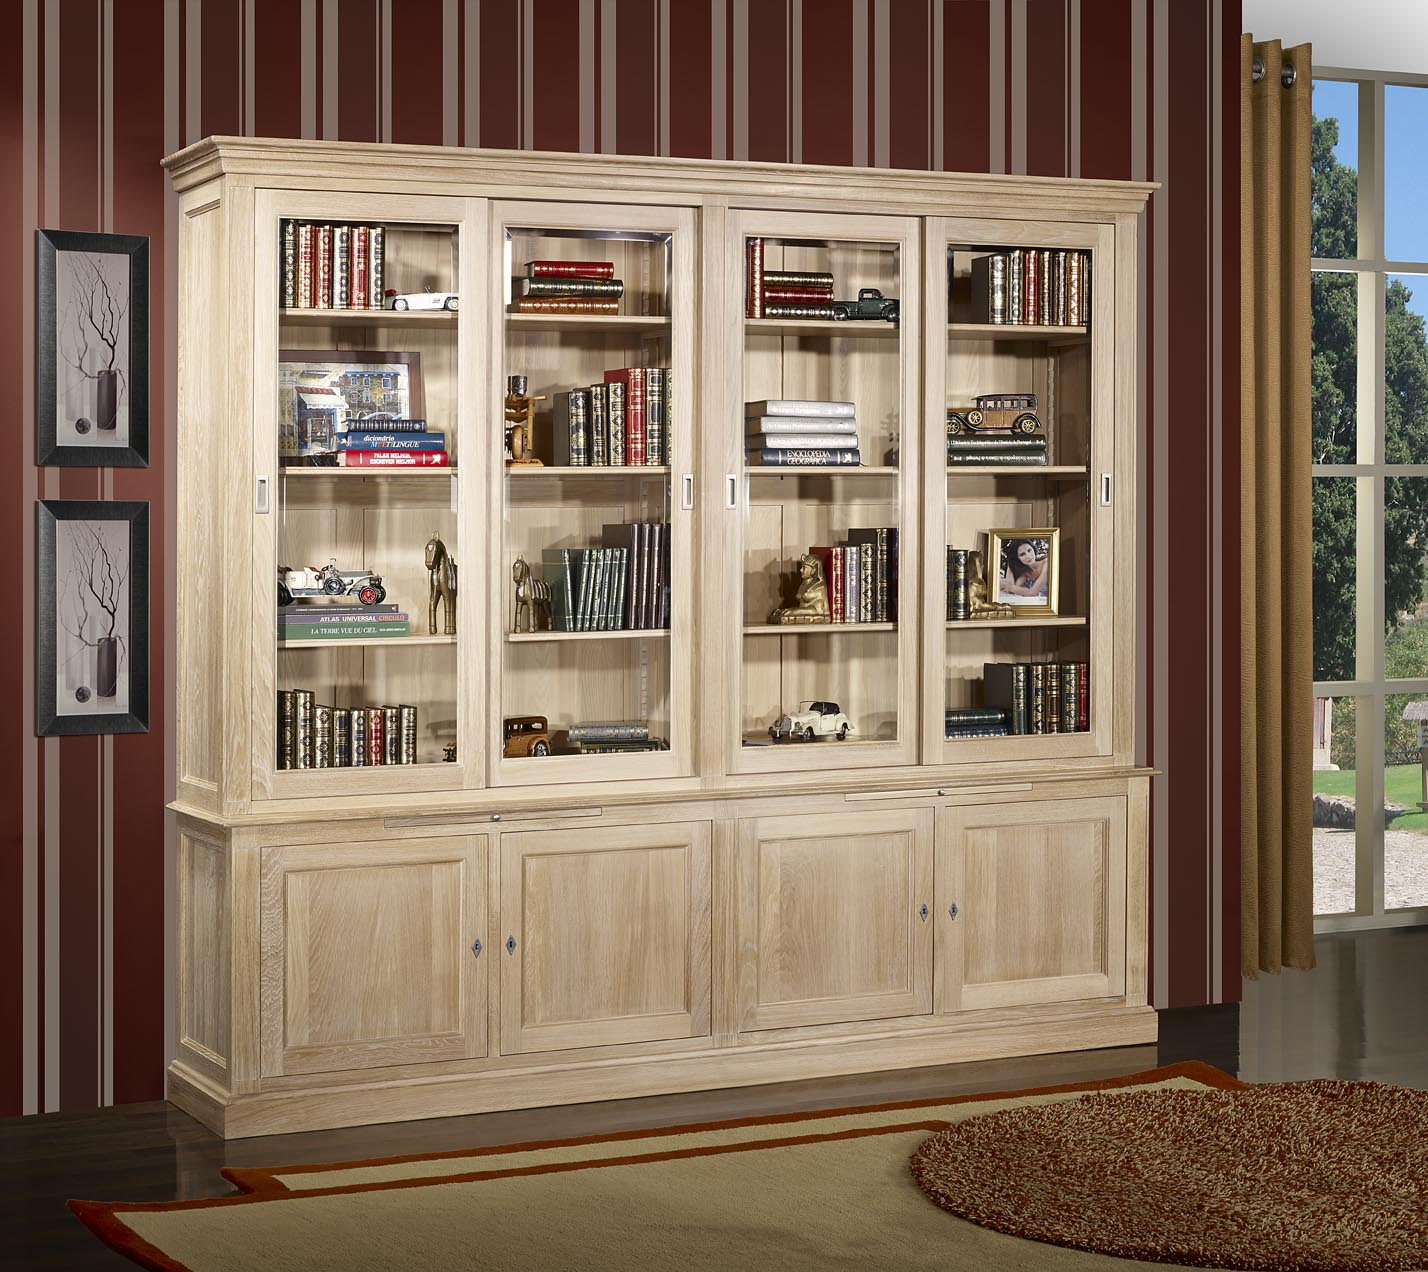 biblioth que 2 corps 4 portes coulissantes en ch ne massif de style directoire finition ch ne. Black Bedroom Furniture Sets. Home Design Ideas